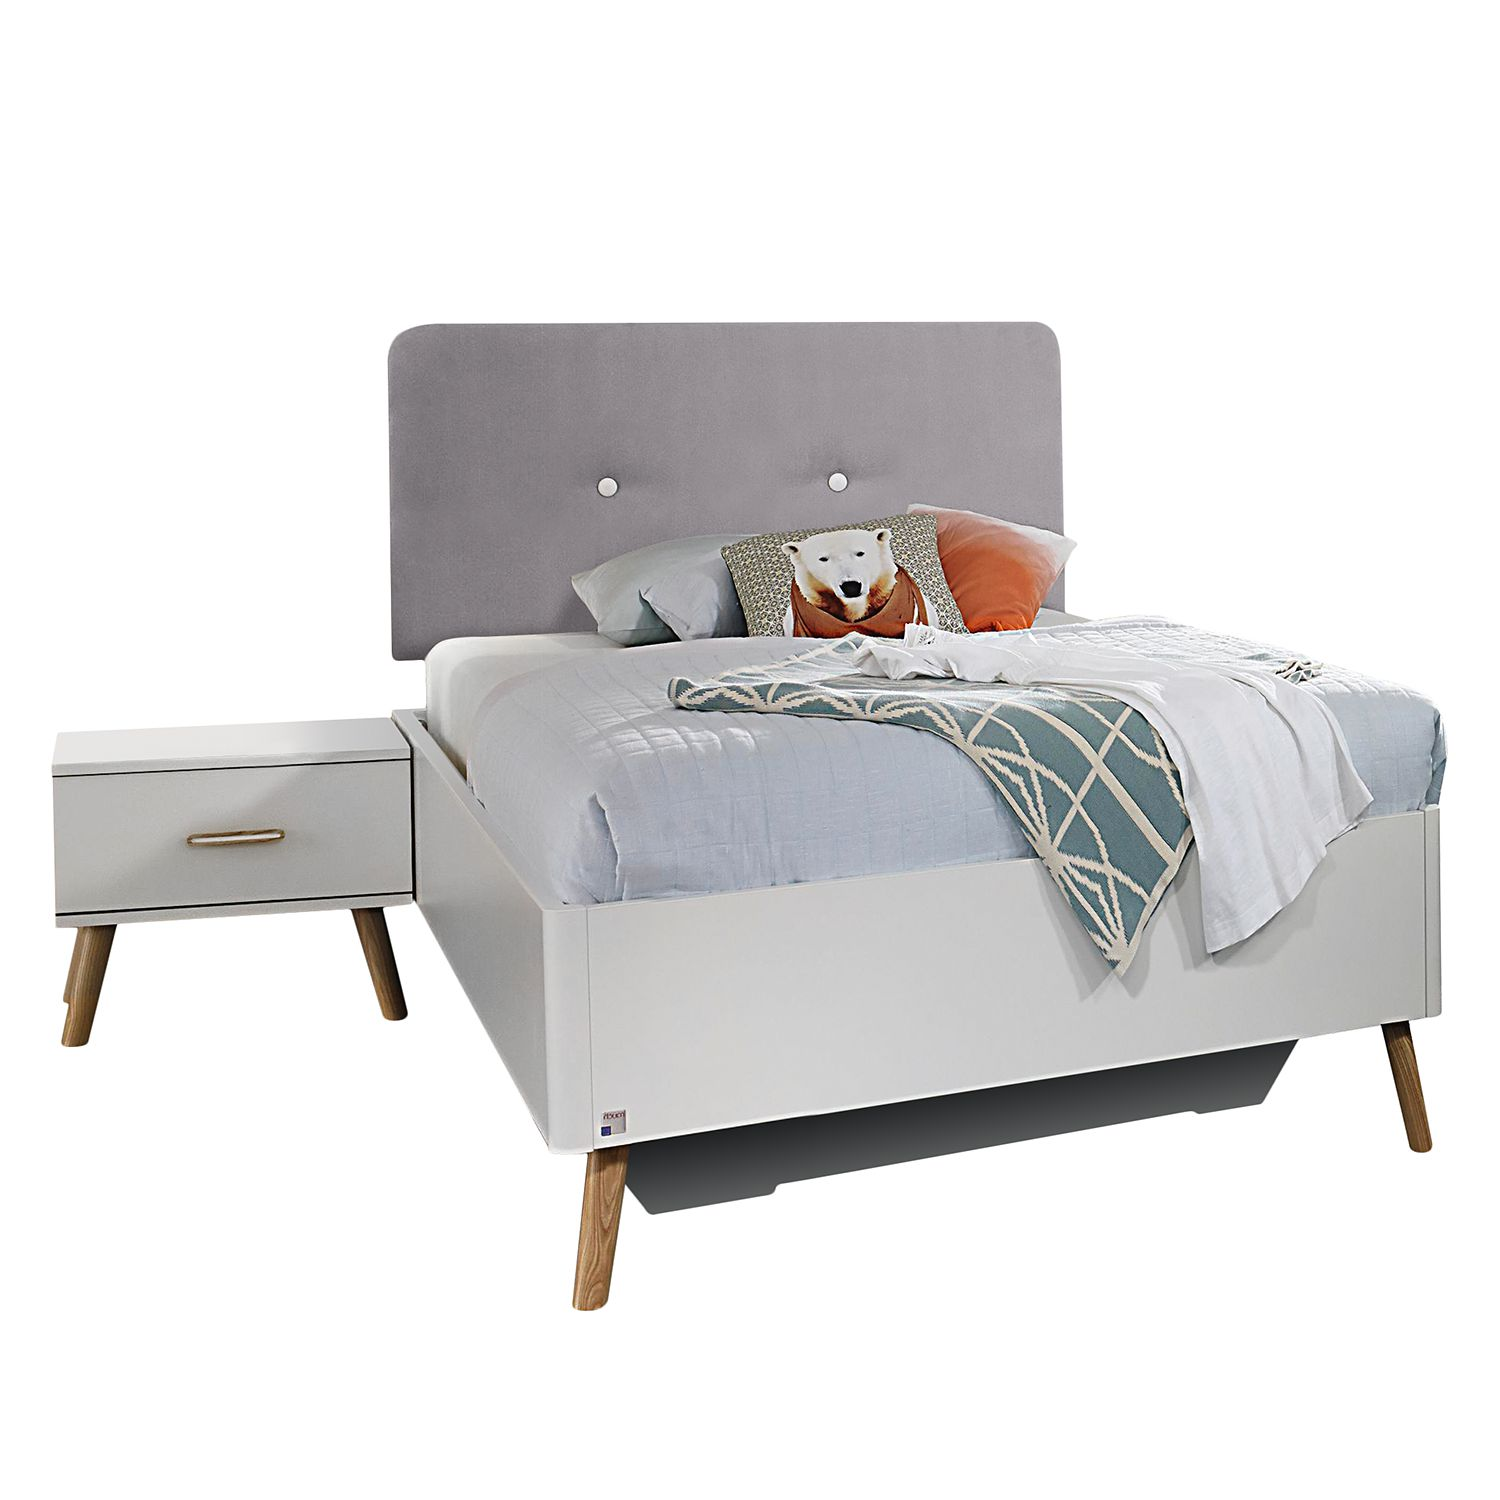 Bed Annett, Rauch Pack´s